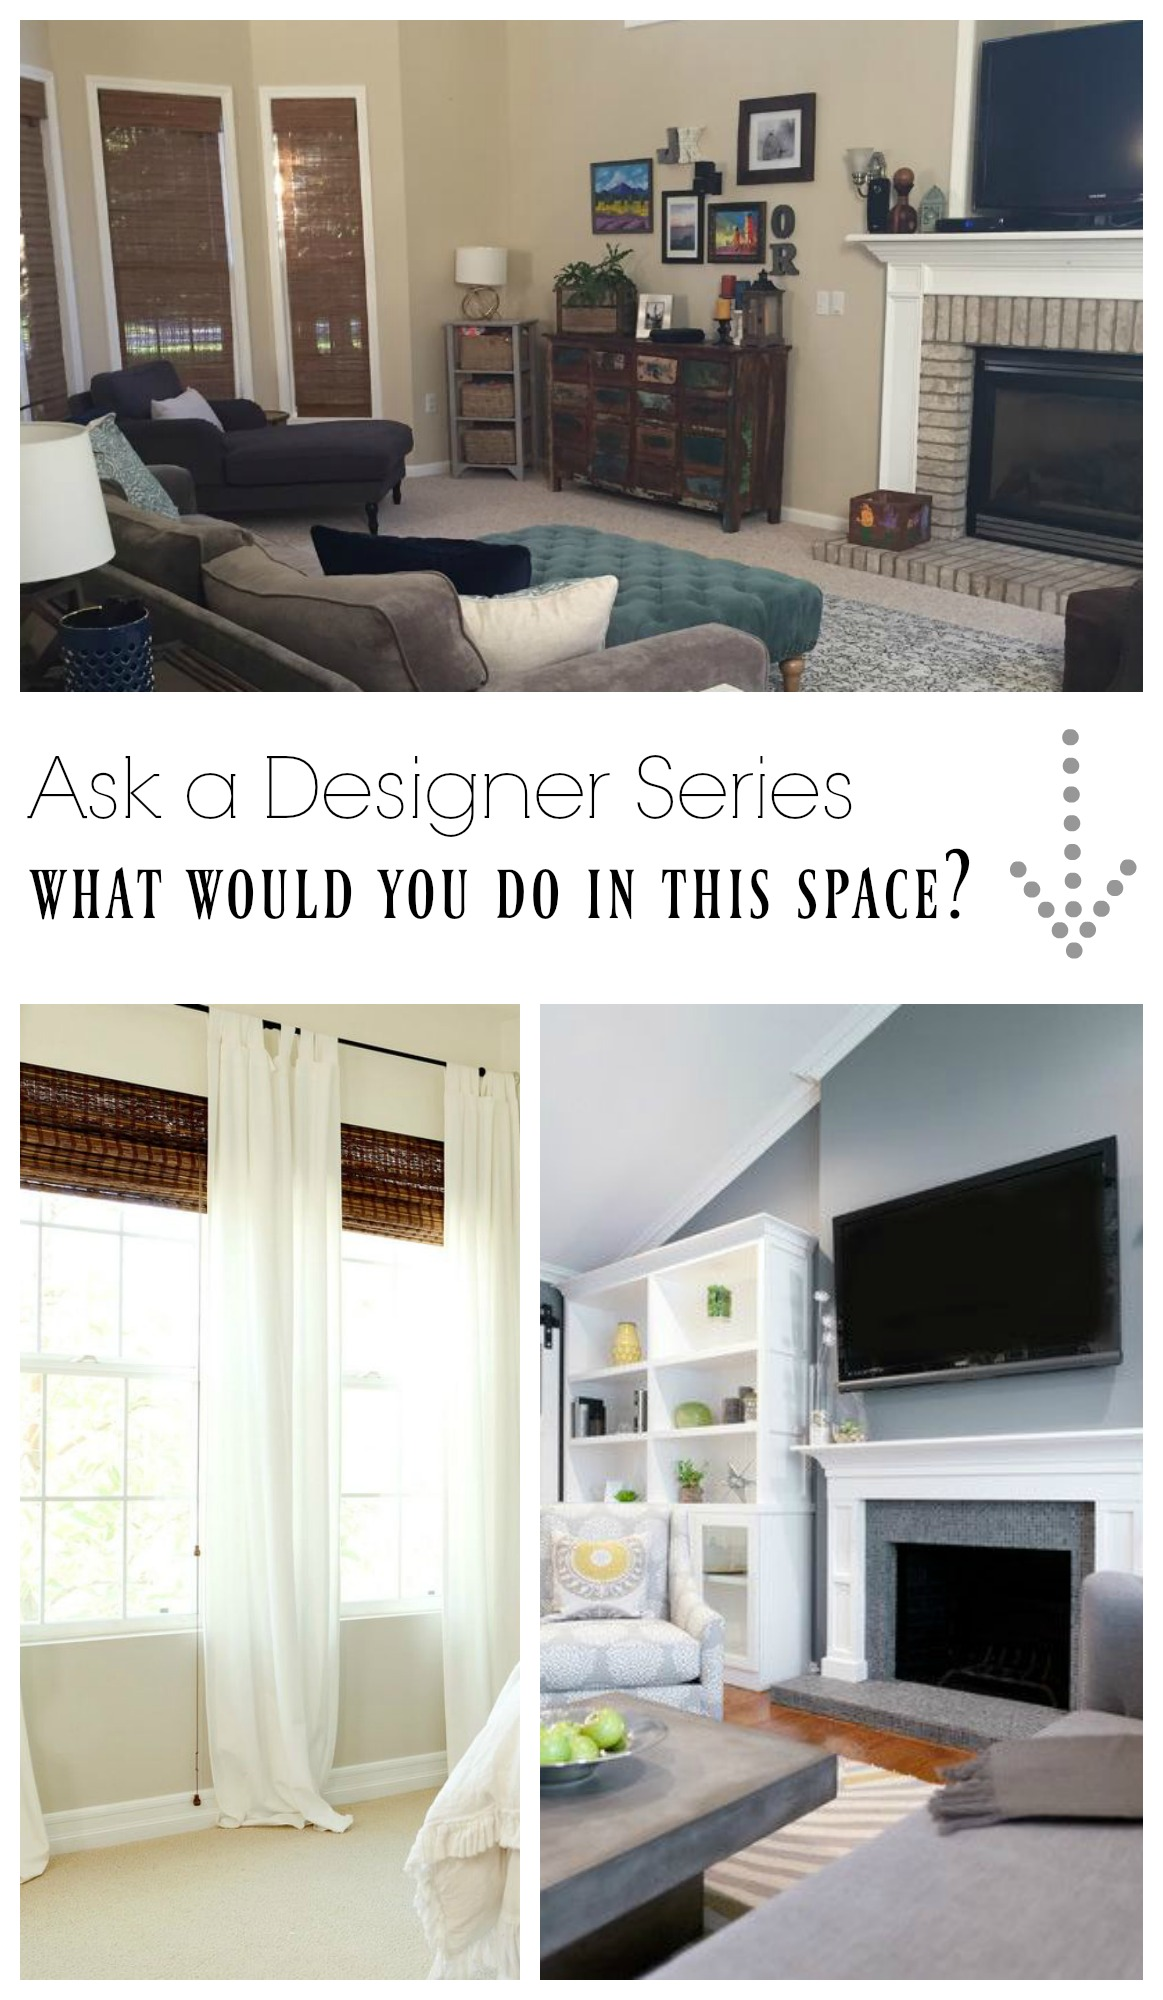 Ask a Designer Series- What would you do with this fireplace and window treatments?